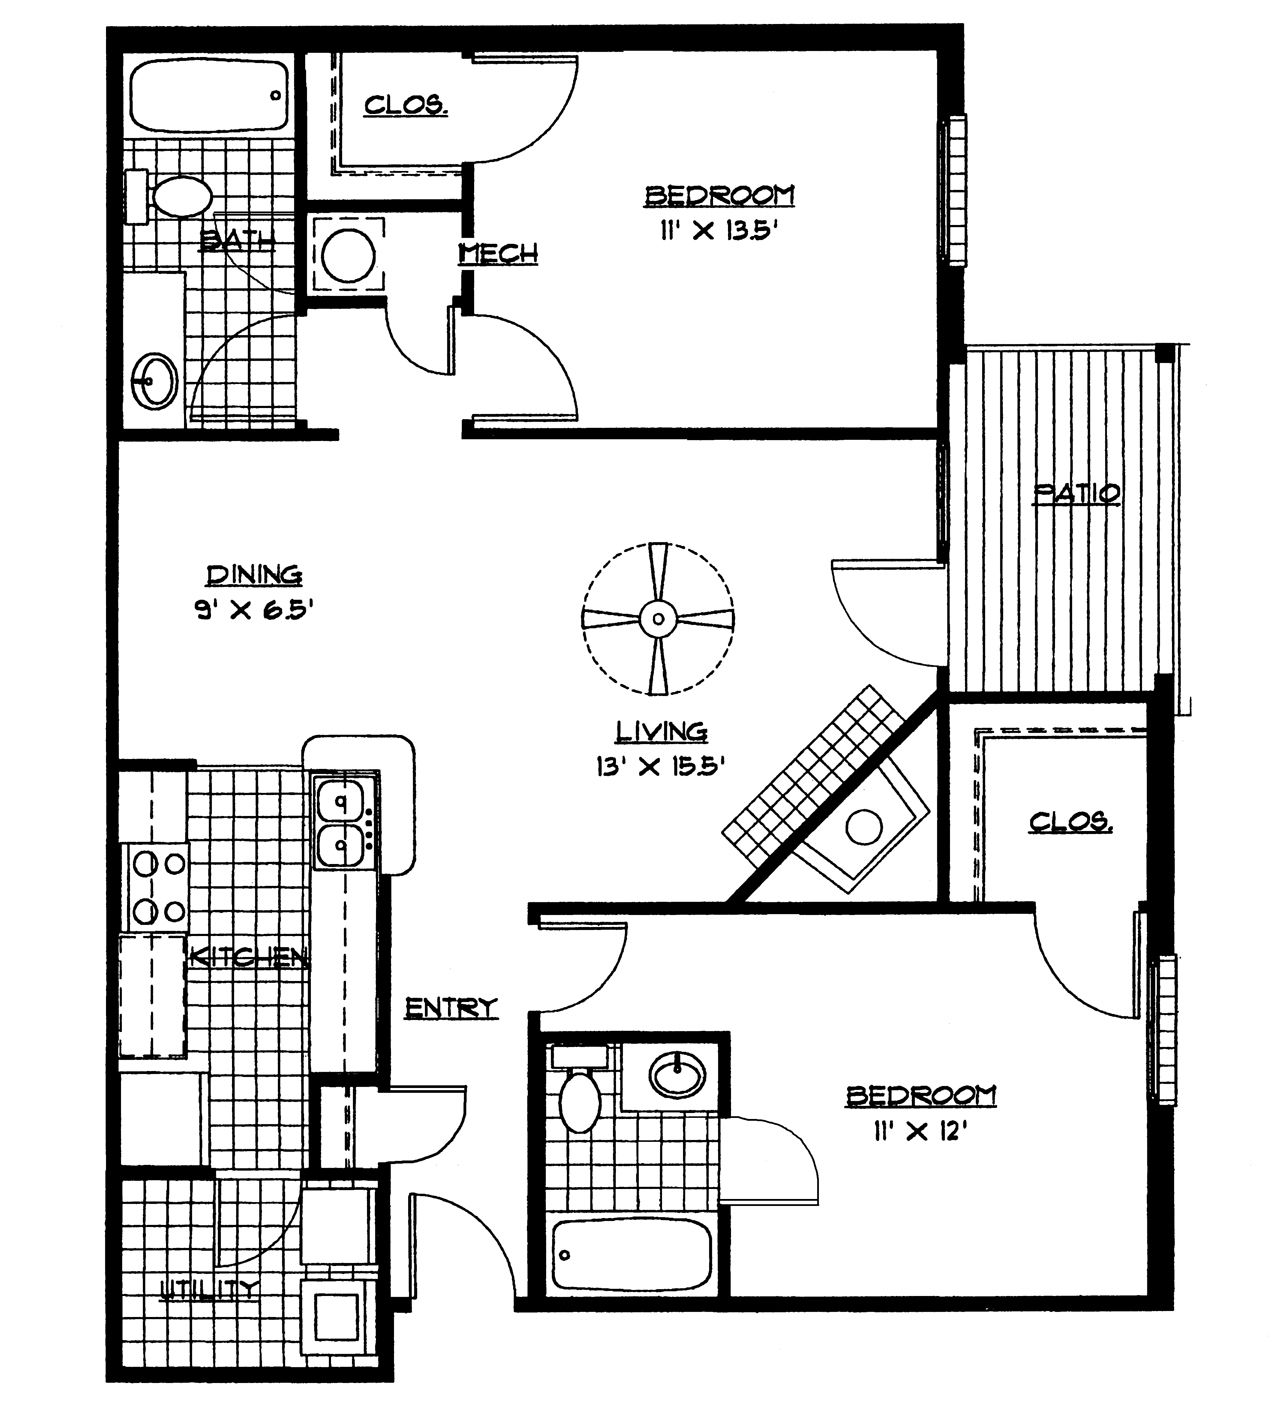 Small house floor plans 2 bedrooms bedroom floor plan for Bedroom floor plans